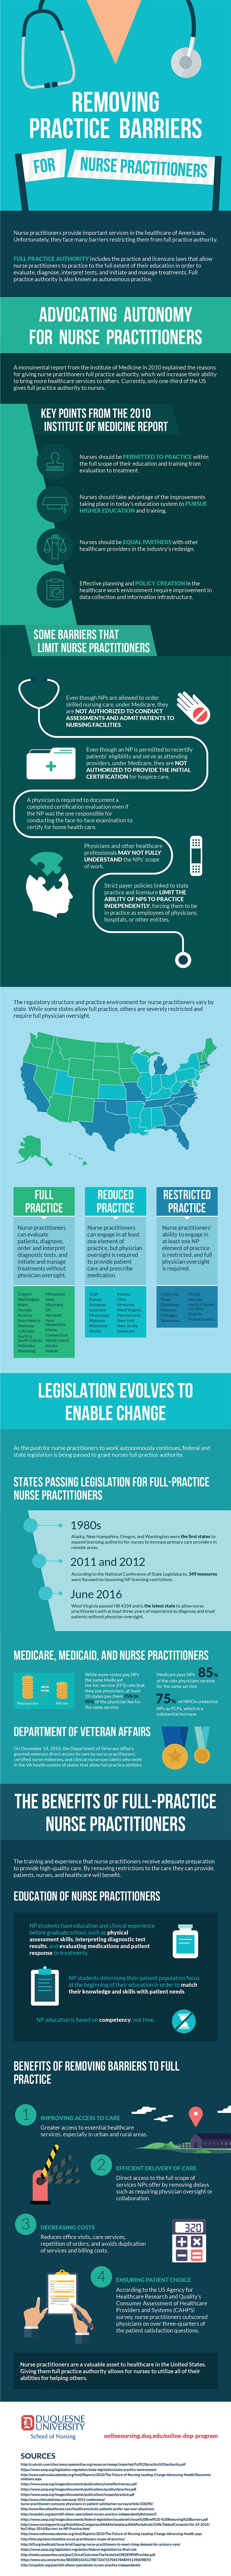 Removing Practice Barriers Infographic